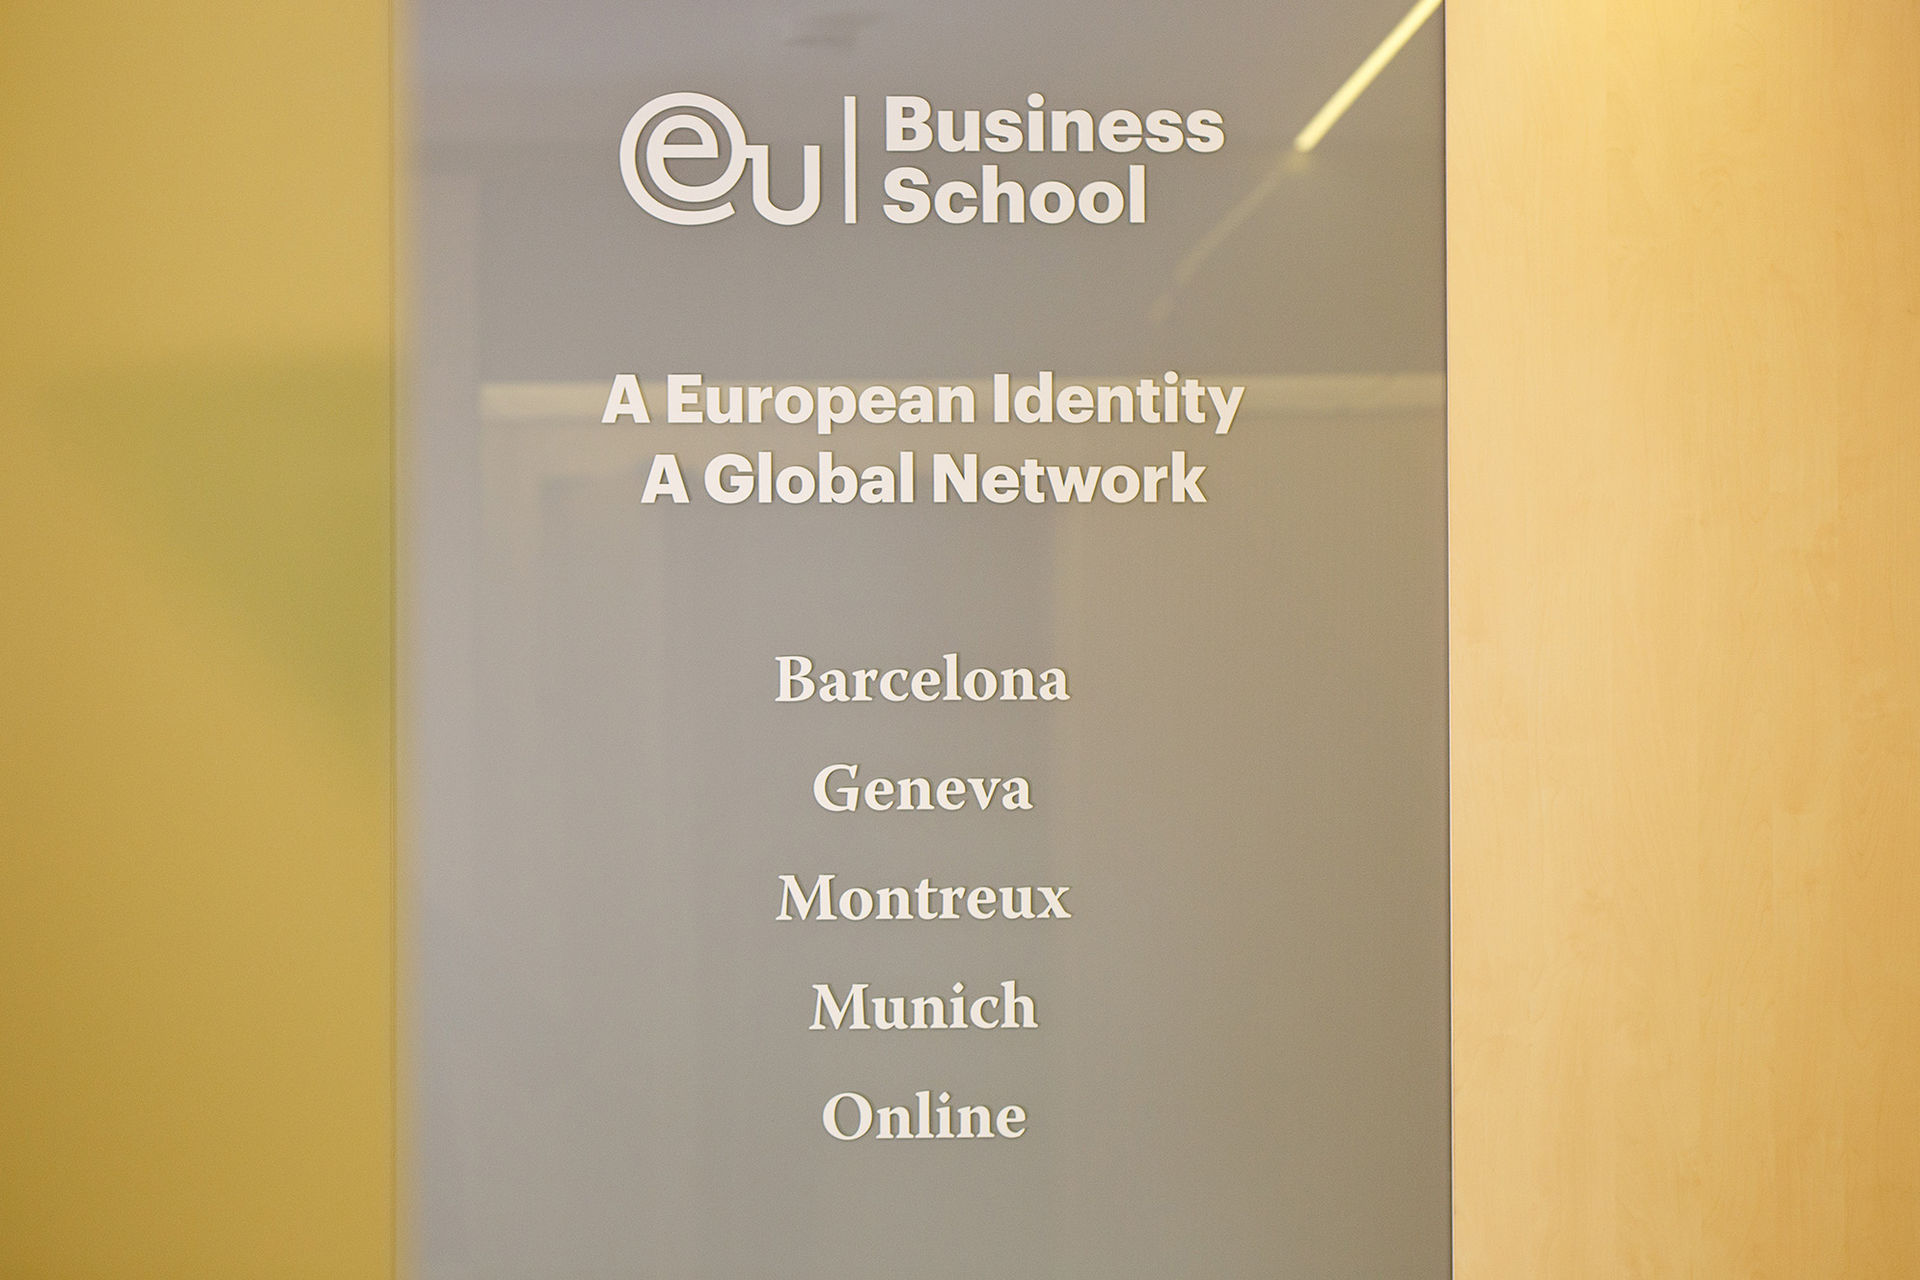 Study abroad in Barcelona | Bachelor's & Master's | EU